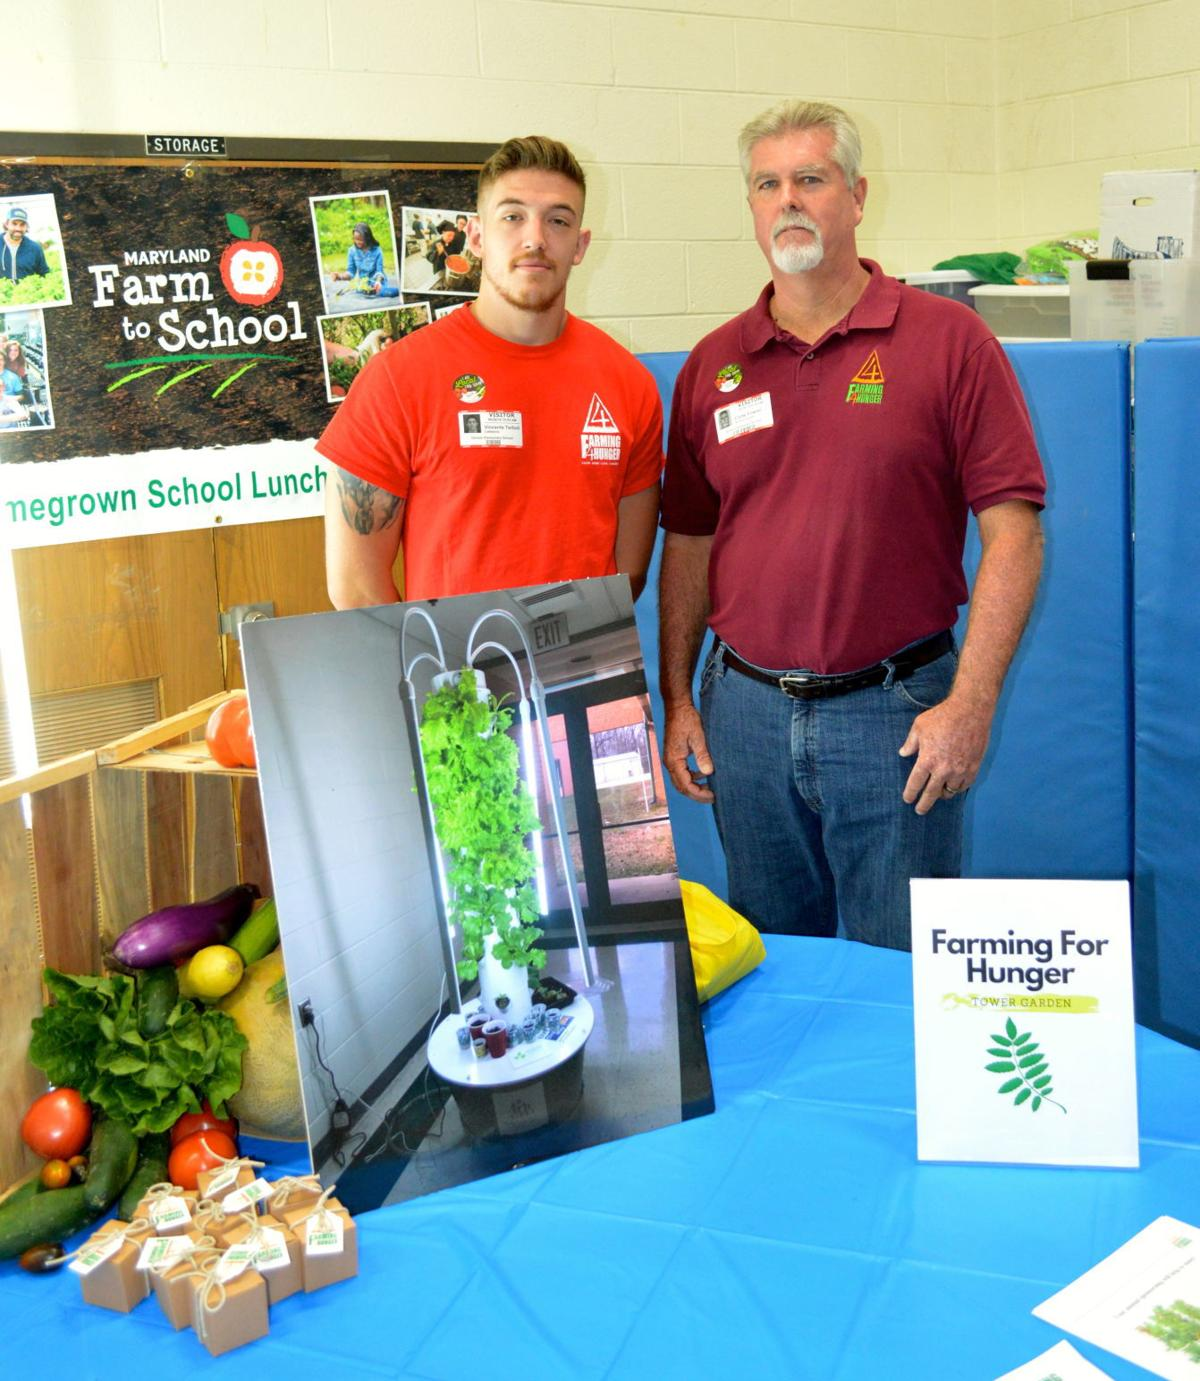 Maryland Homegrown School Lunch Week kicks off at Denton Elementary School